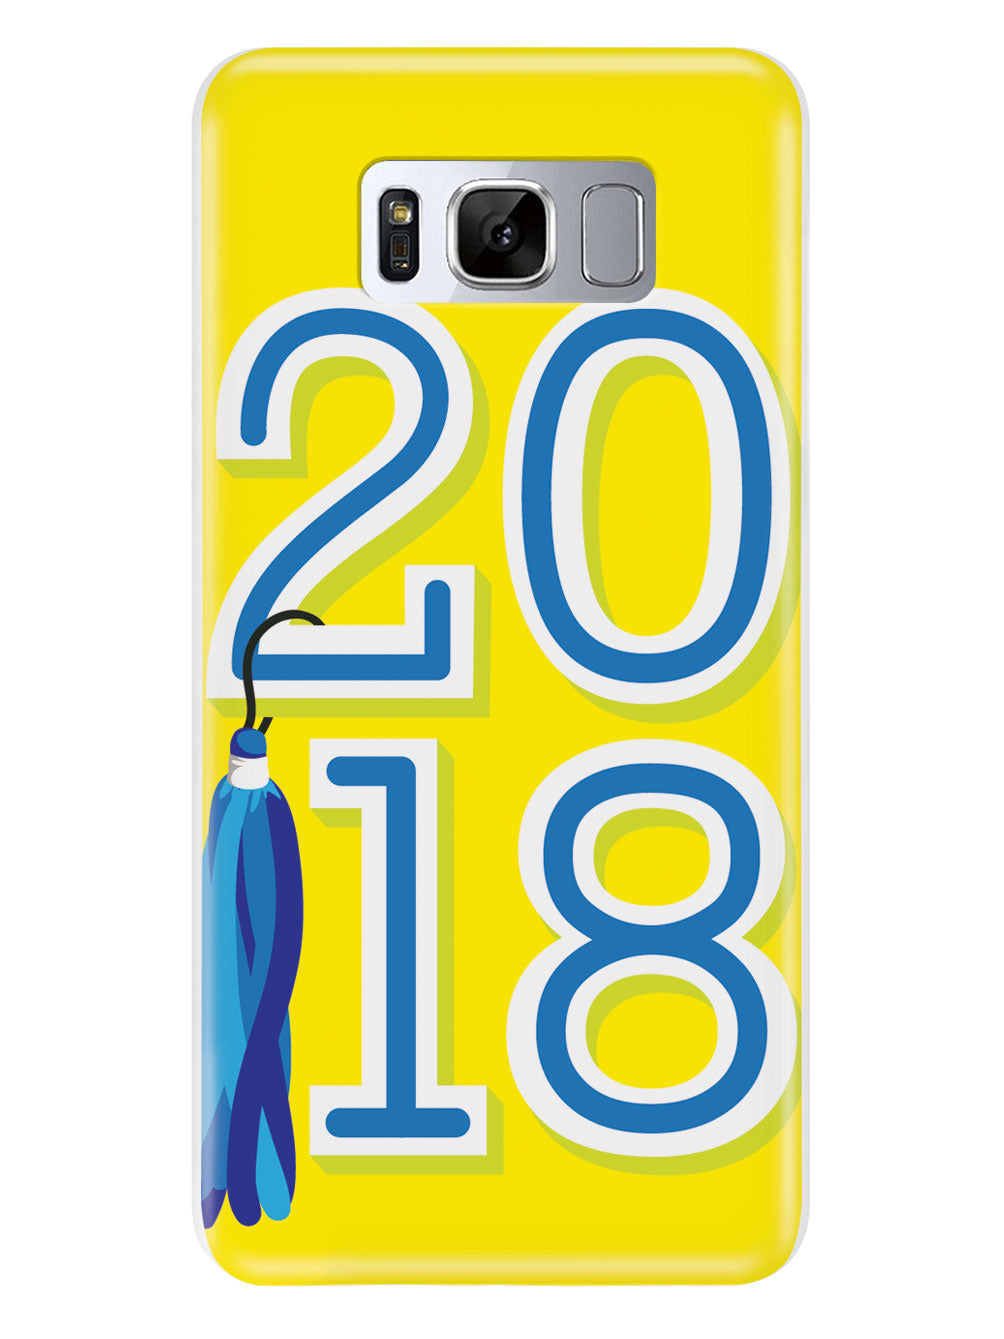 Class of 2018 - Yellow - White Case